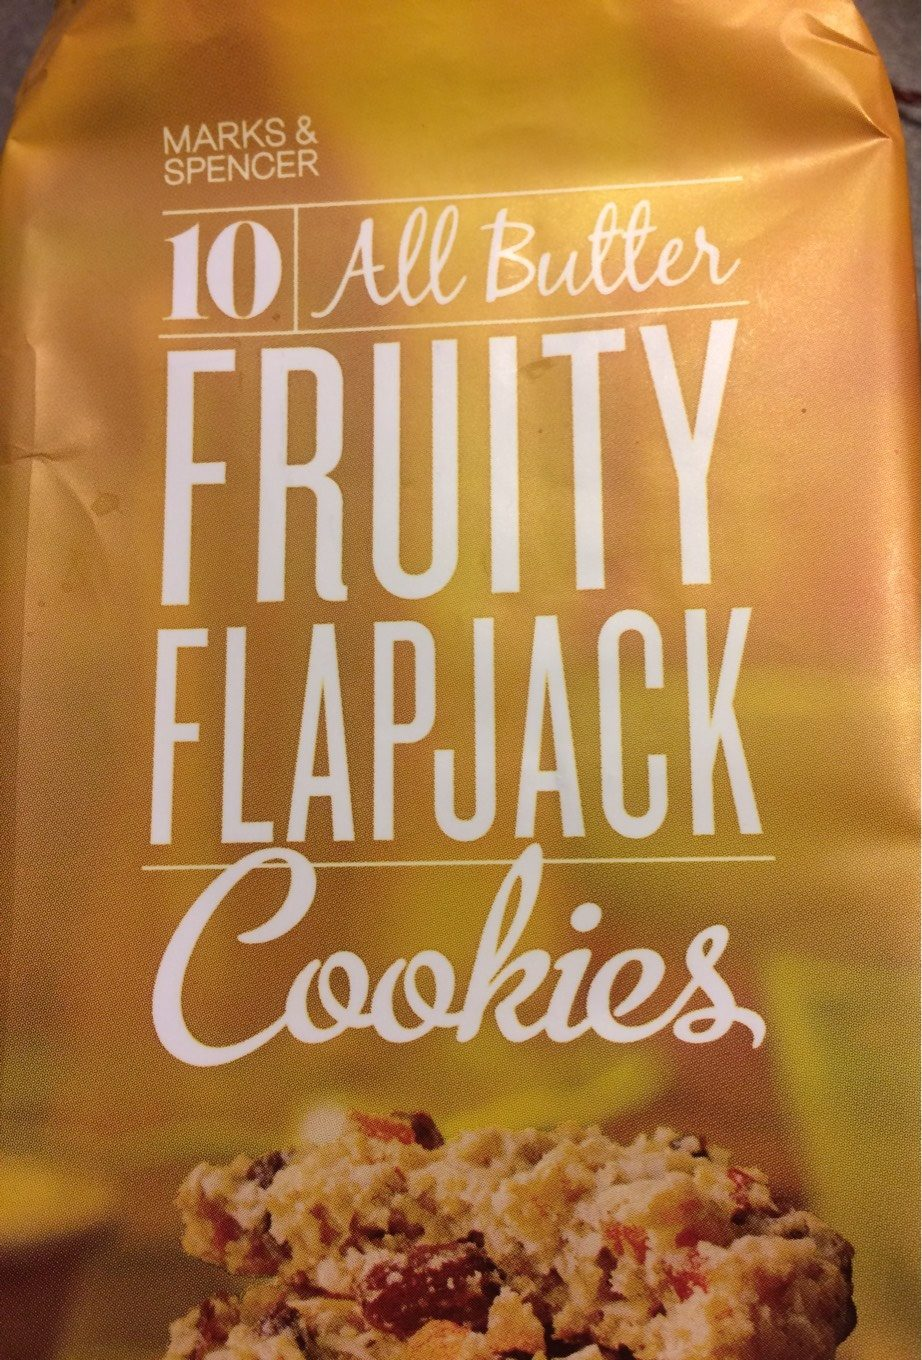 All Butter Fruity Flapjack Cookies - Product